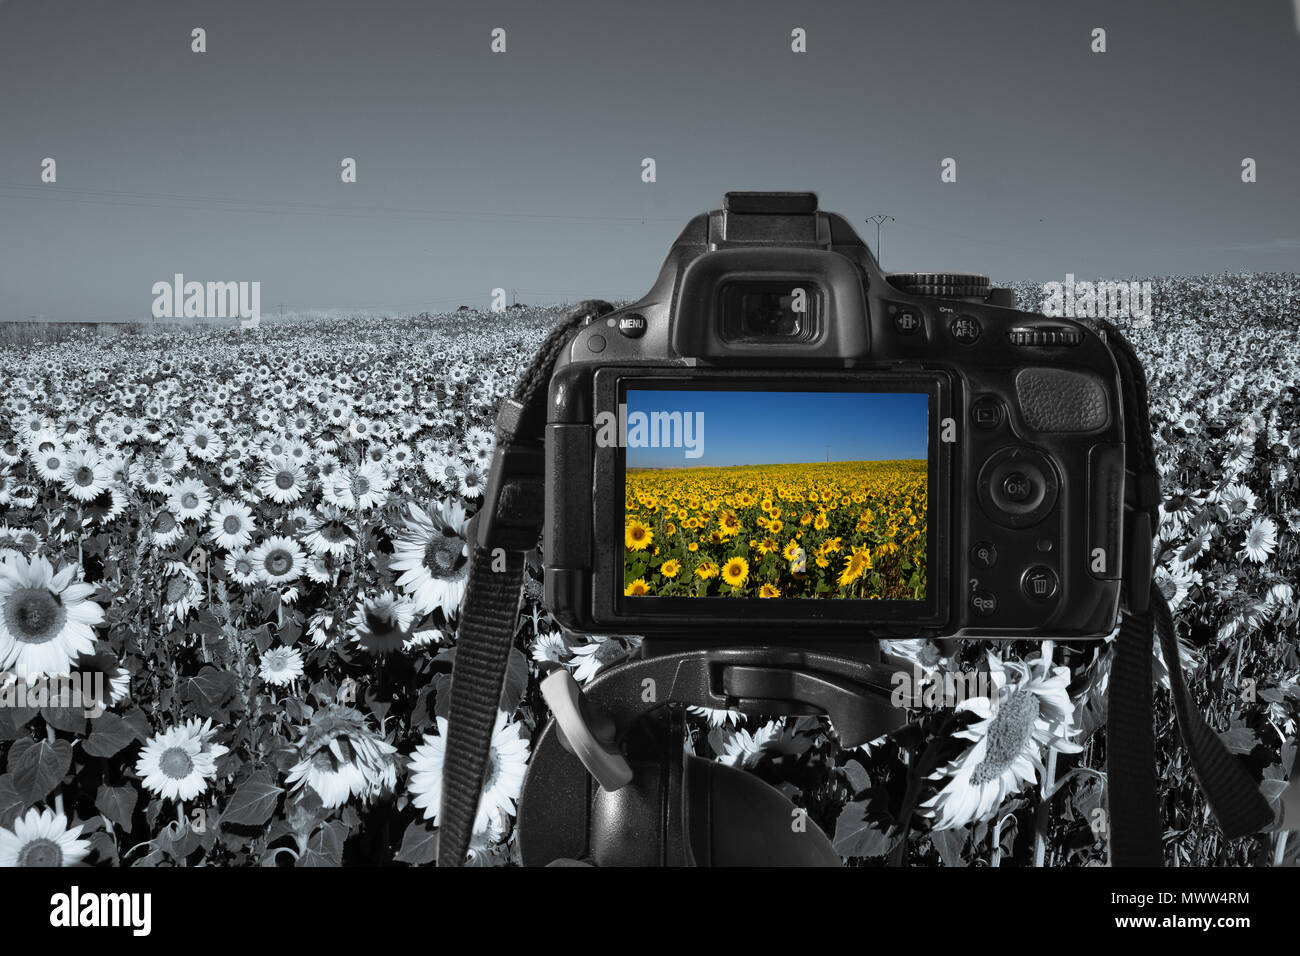 close up of a digital camera with an image of sunflowers on the live-view, monochromatic sunflowers in the background - Stock Image